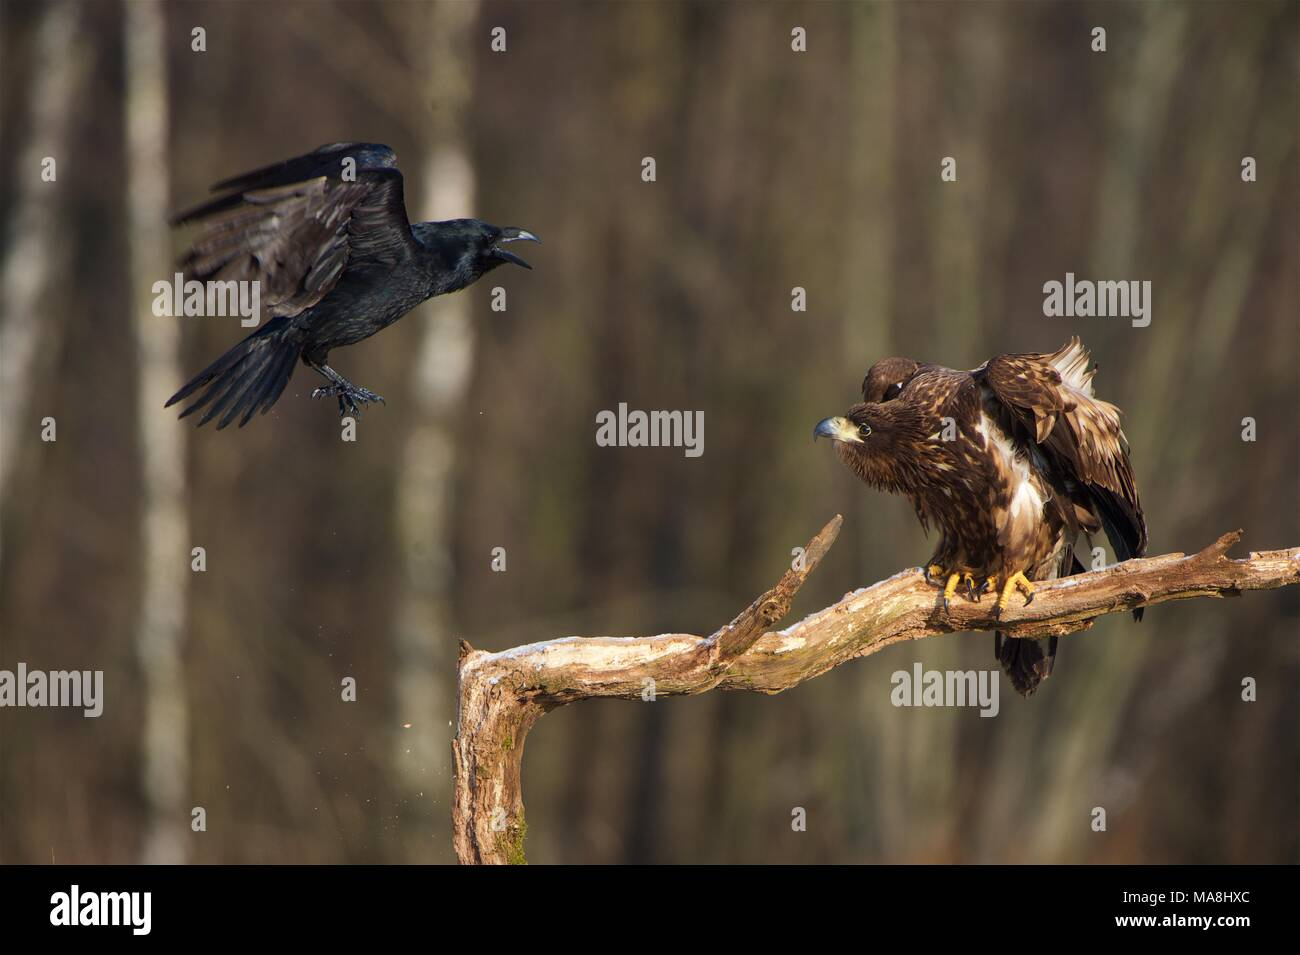 Large Raven pestering a perched White-tailed Sea Eagle Stock Photo